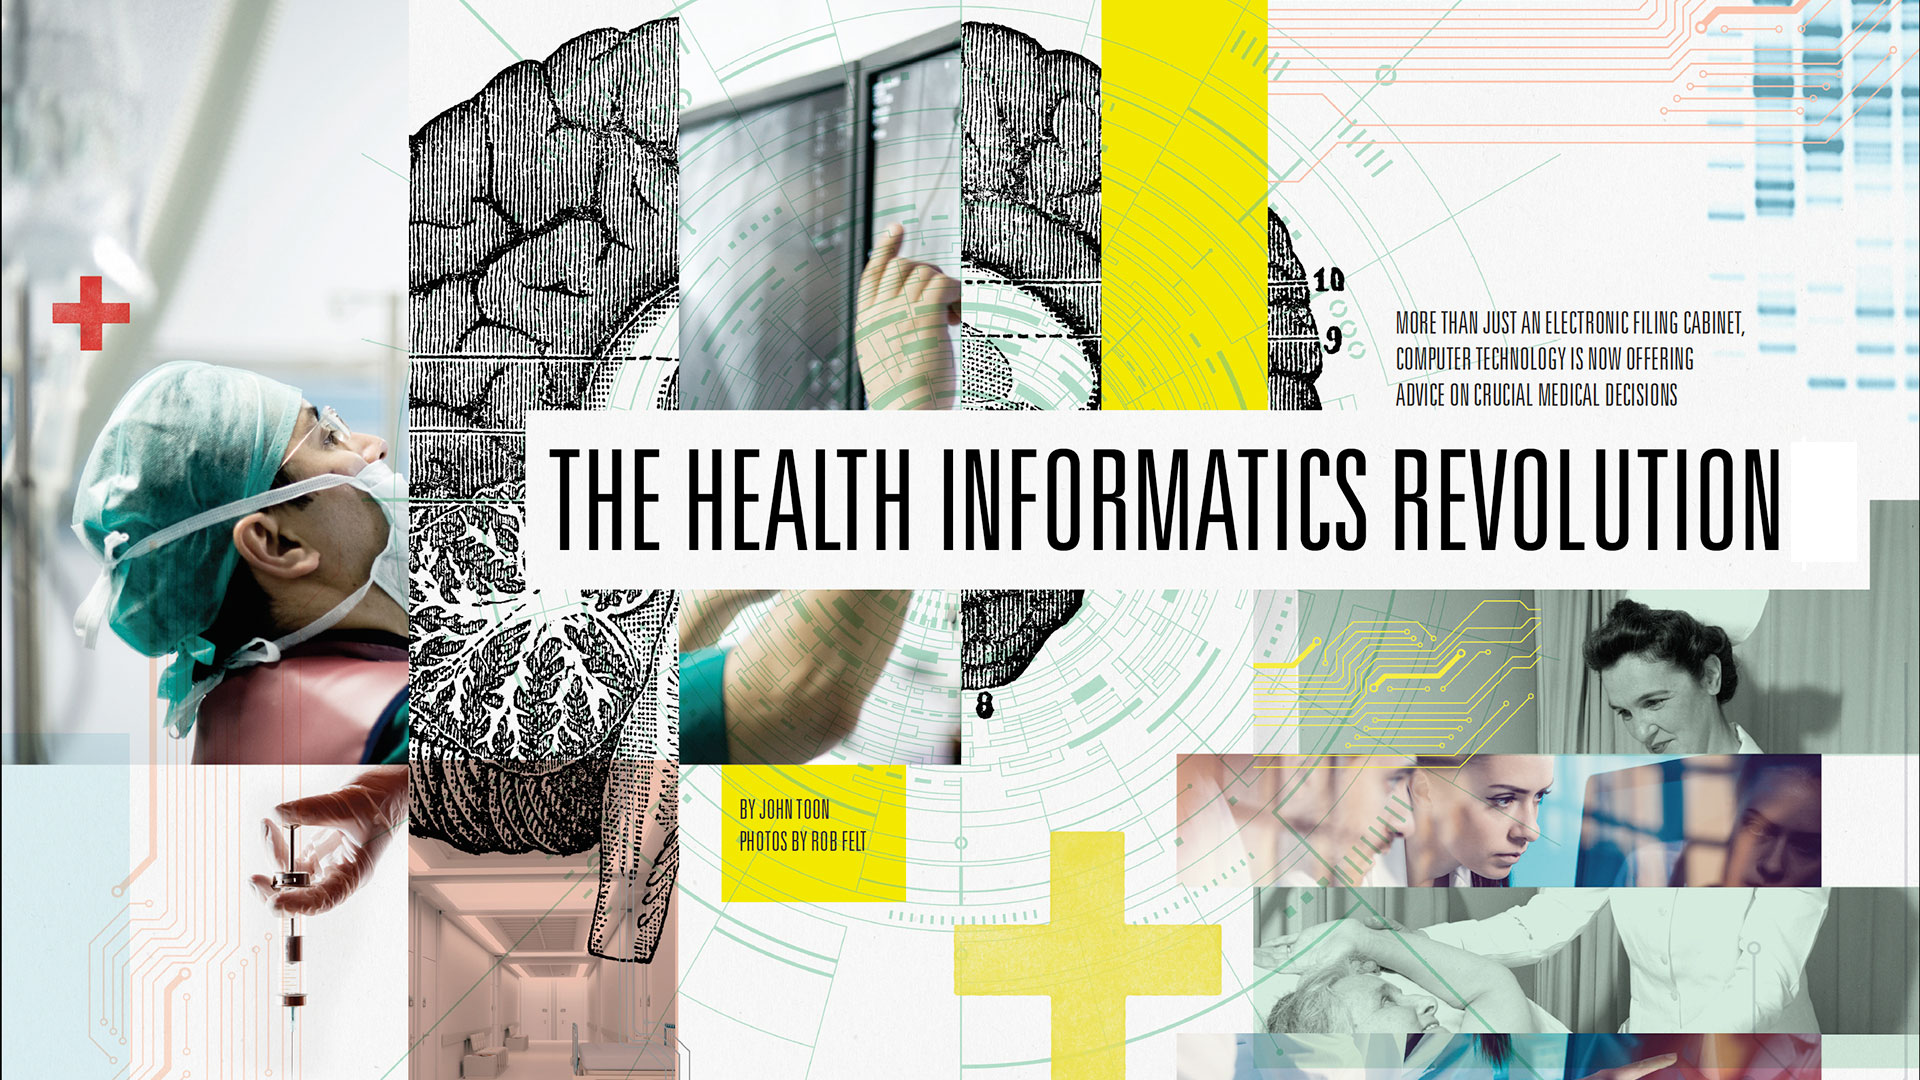 The Health Informatics Revolution